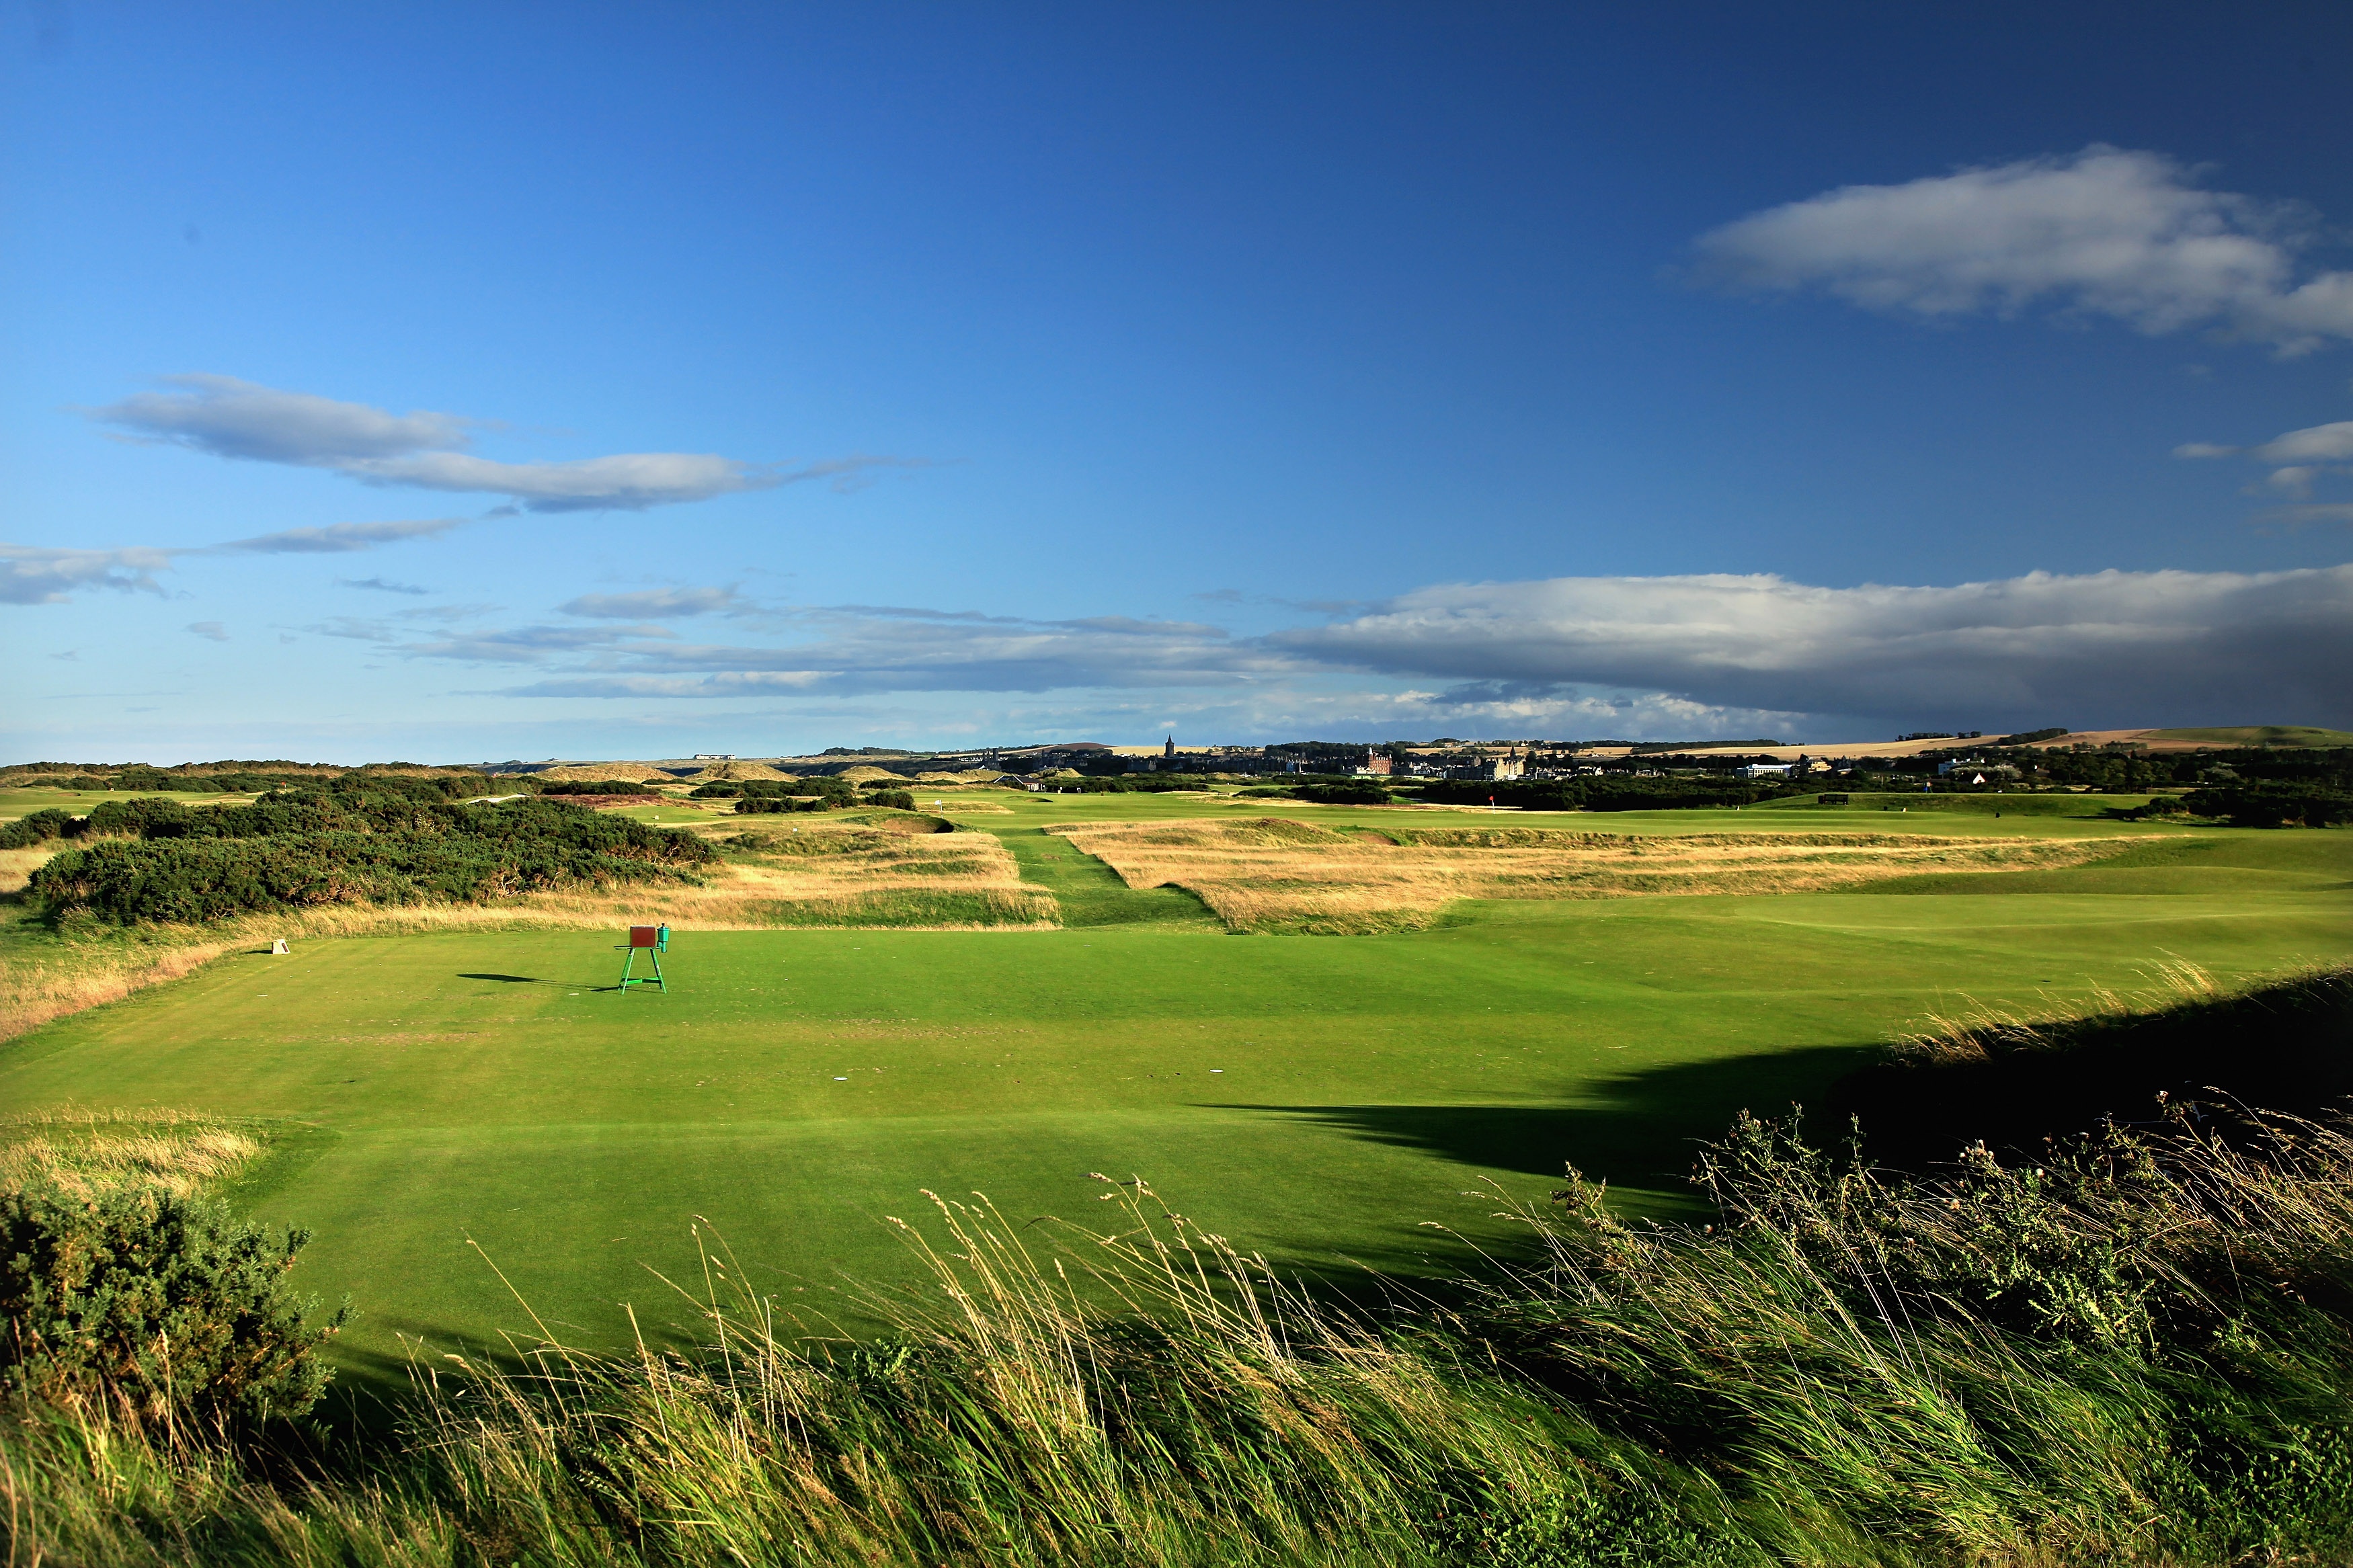 Overview of golf course named St Andrews - The Old Course